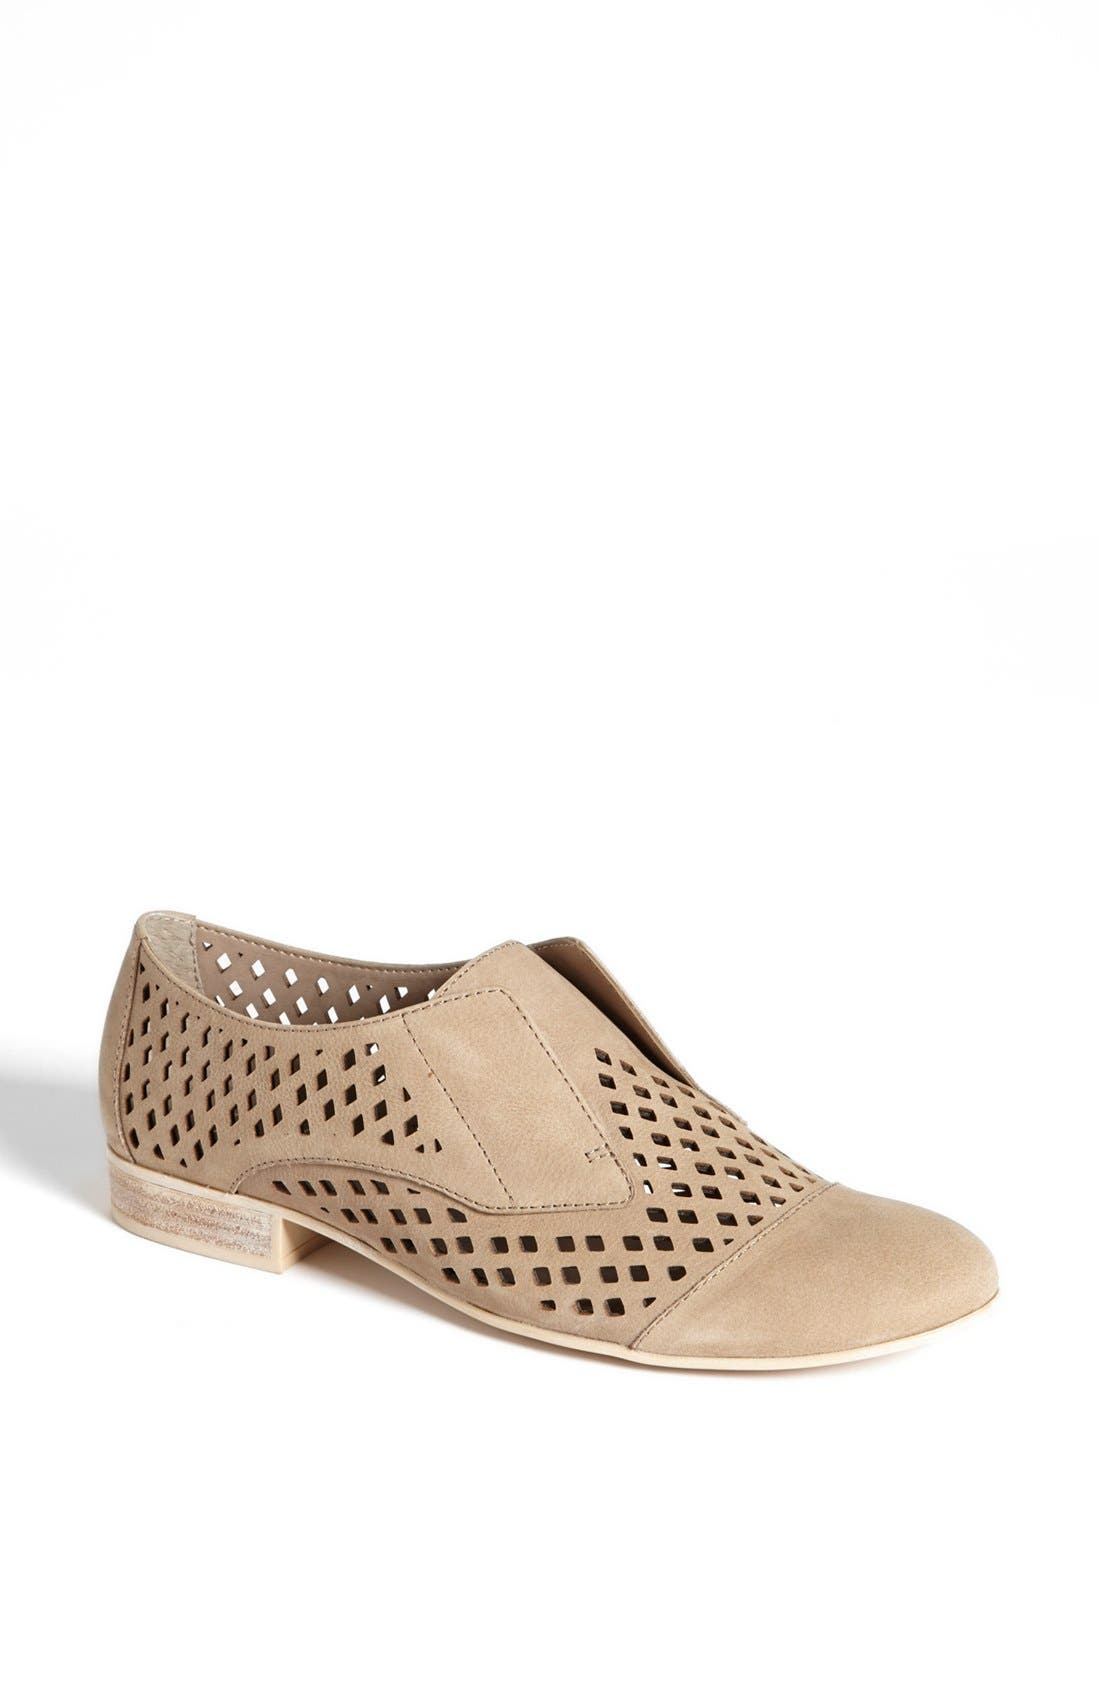 Main Image - Franco Sarto 'Amplify' Leather Flat